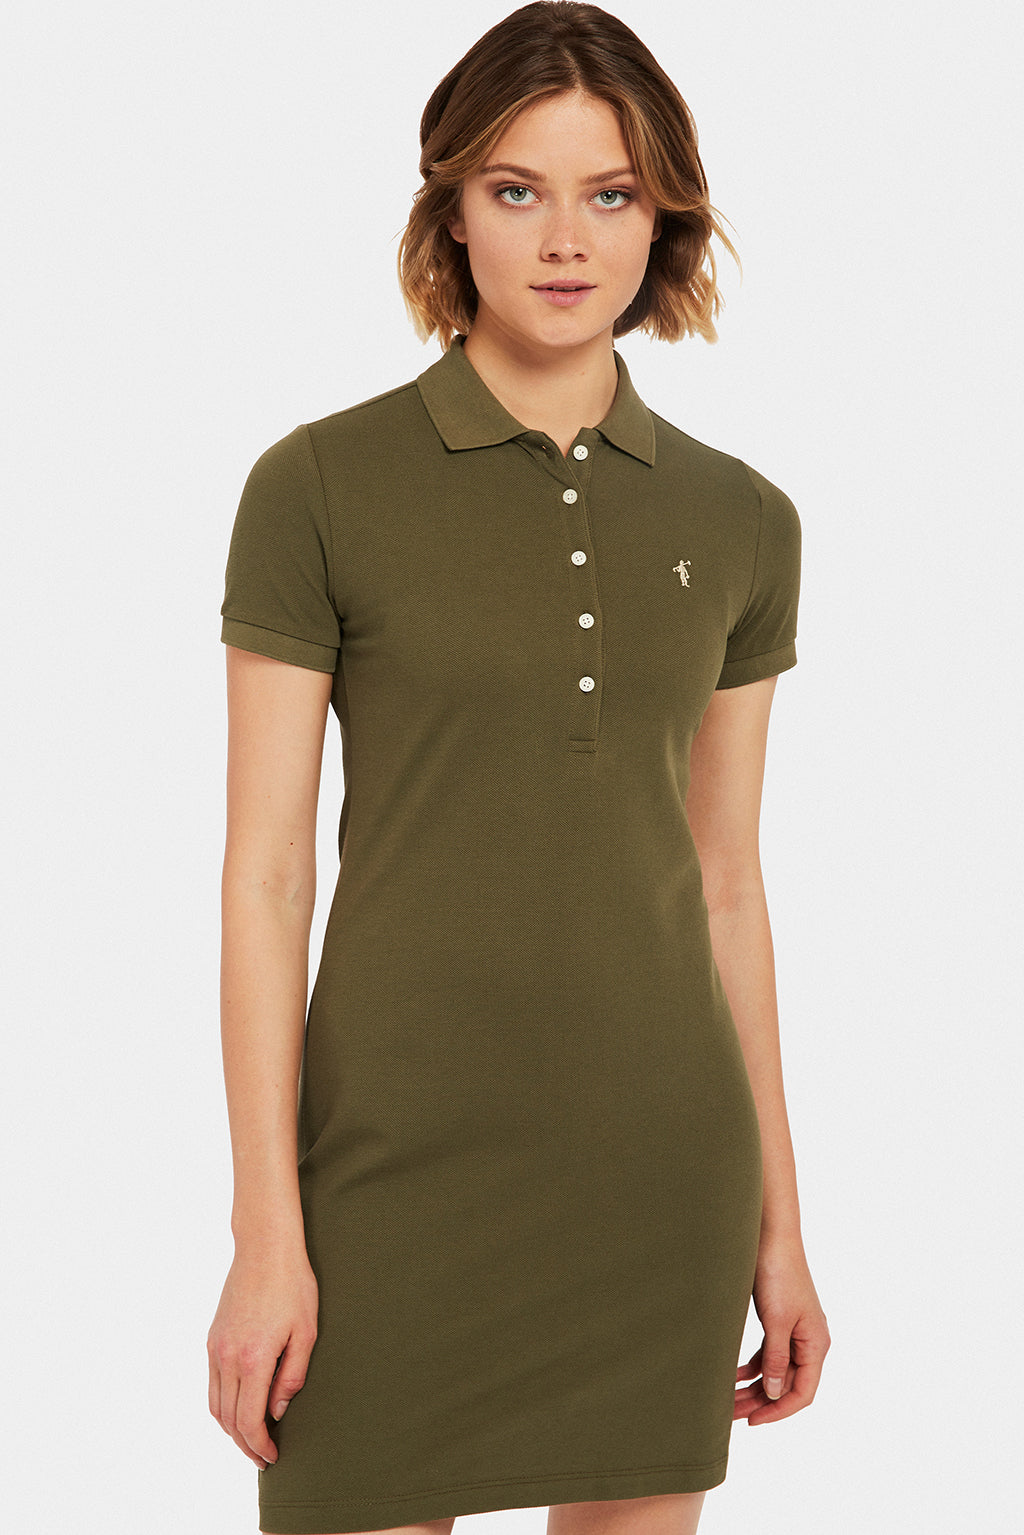 Khaki polo dress